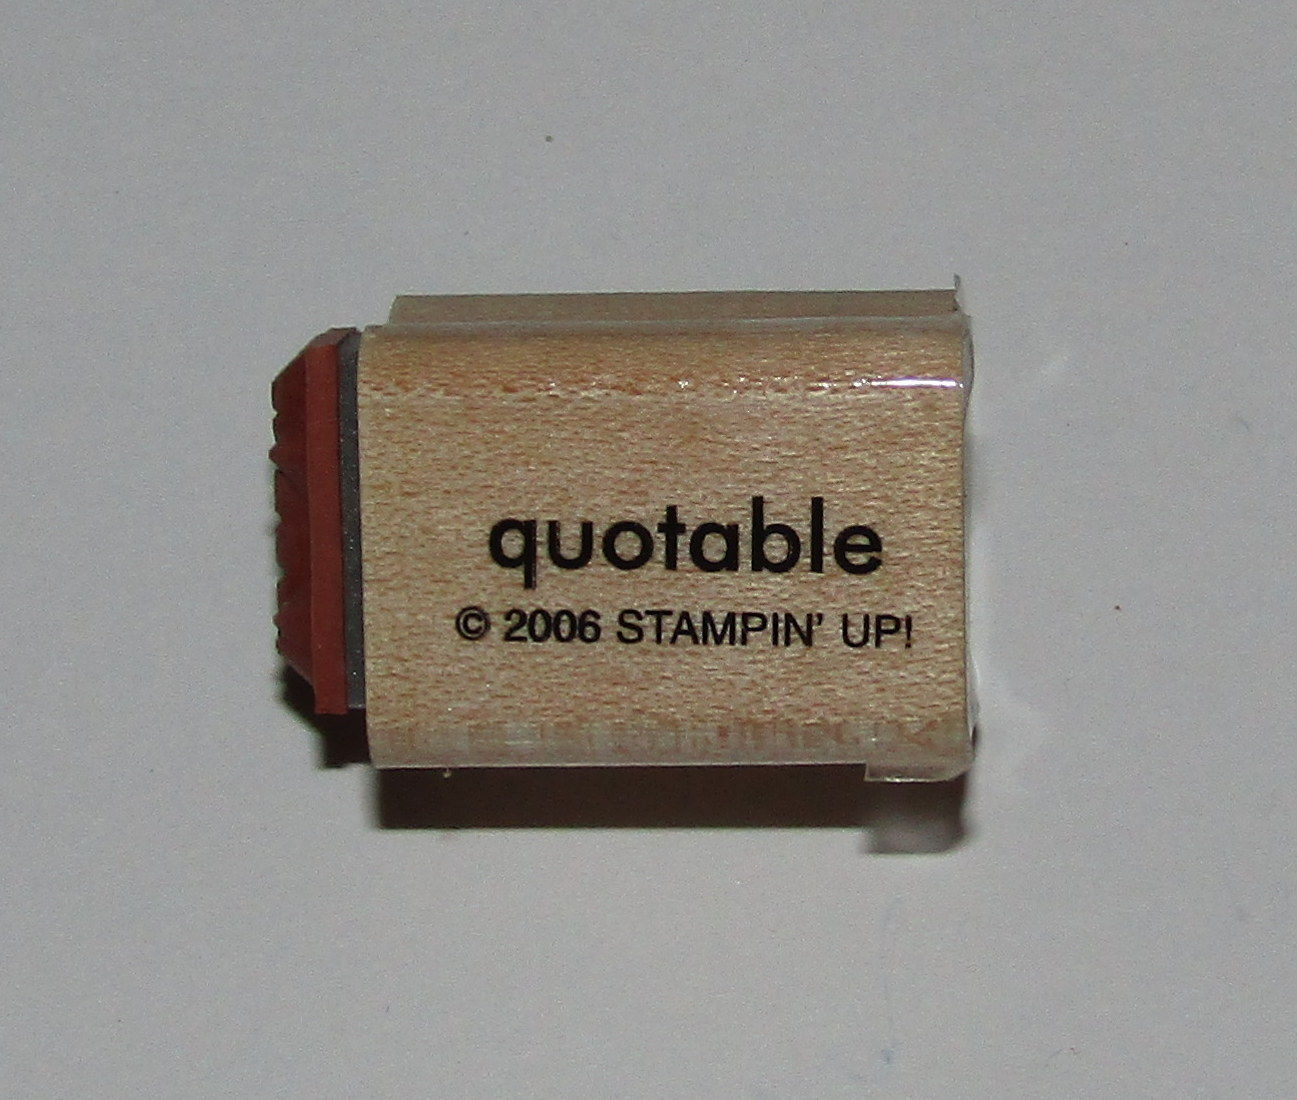 "Primary image for Quotable Thanks Rubber Stamp Mini Words Stampin Up Two-In-One WM 1"" Long"